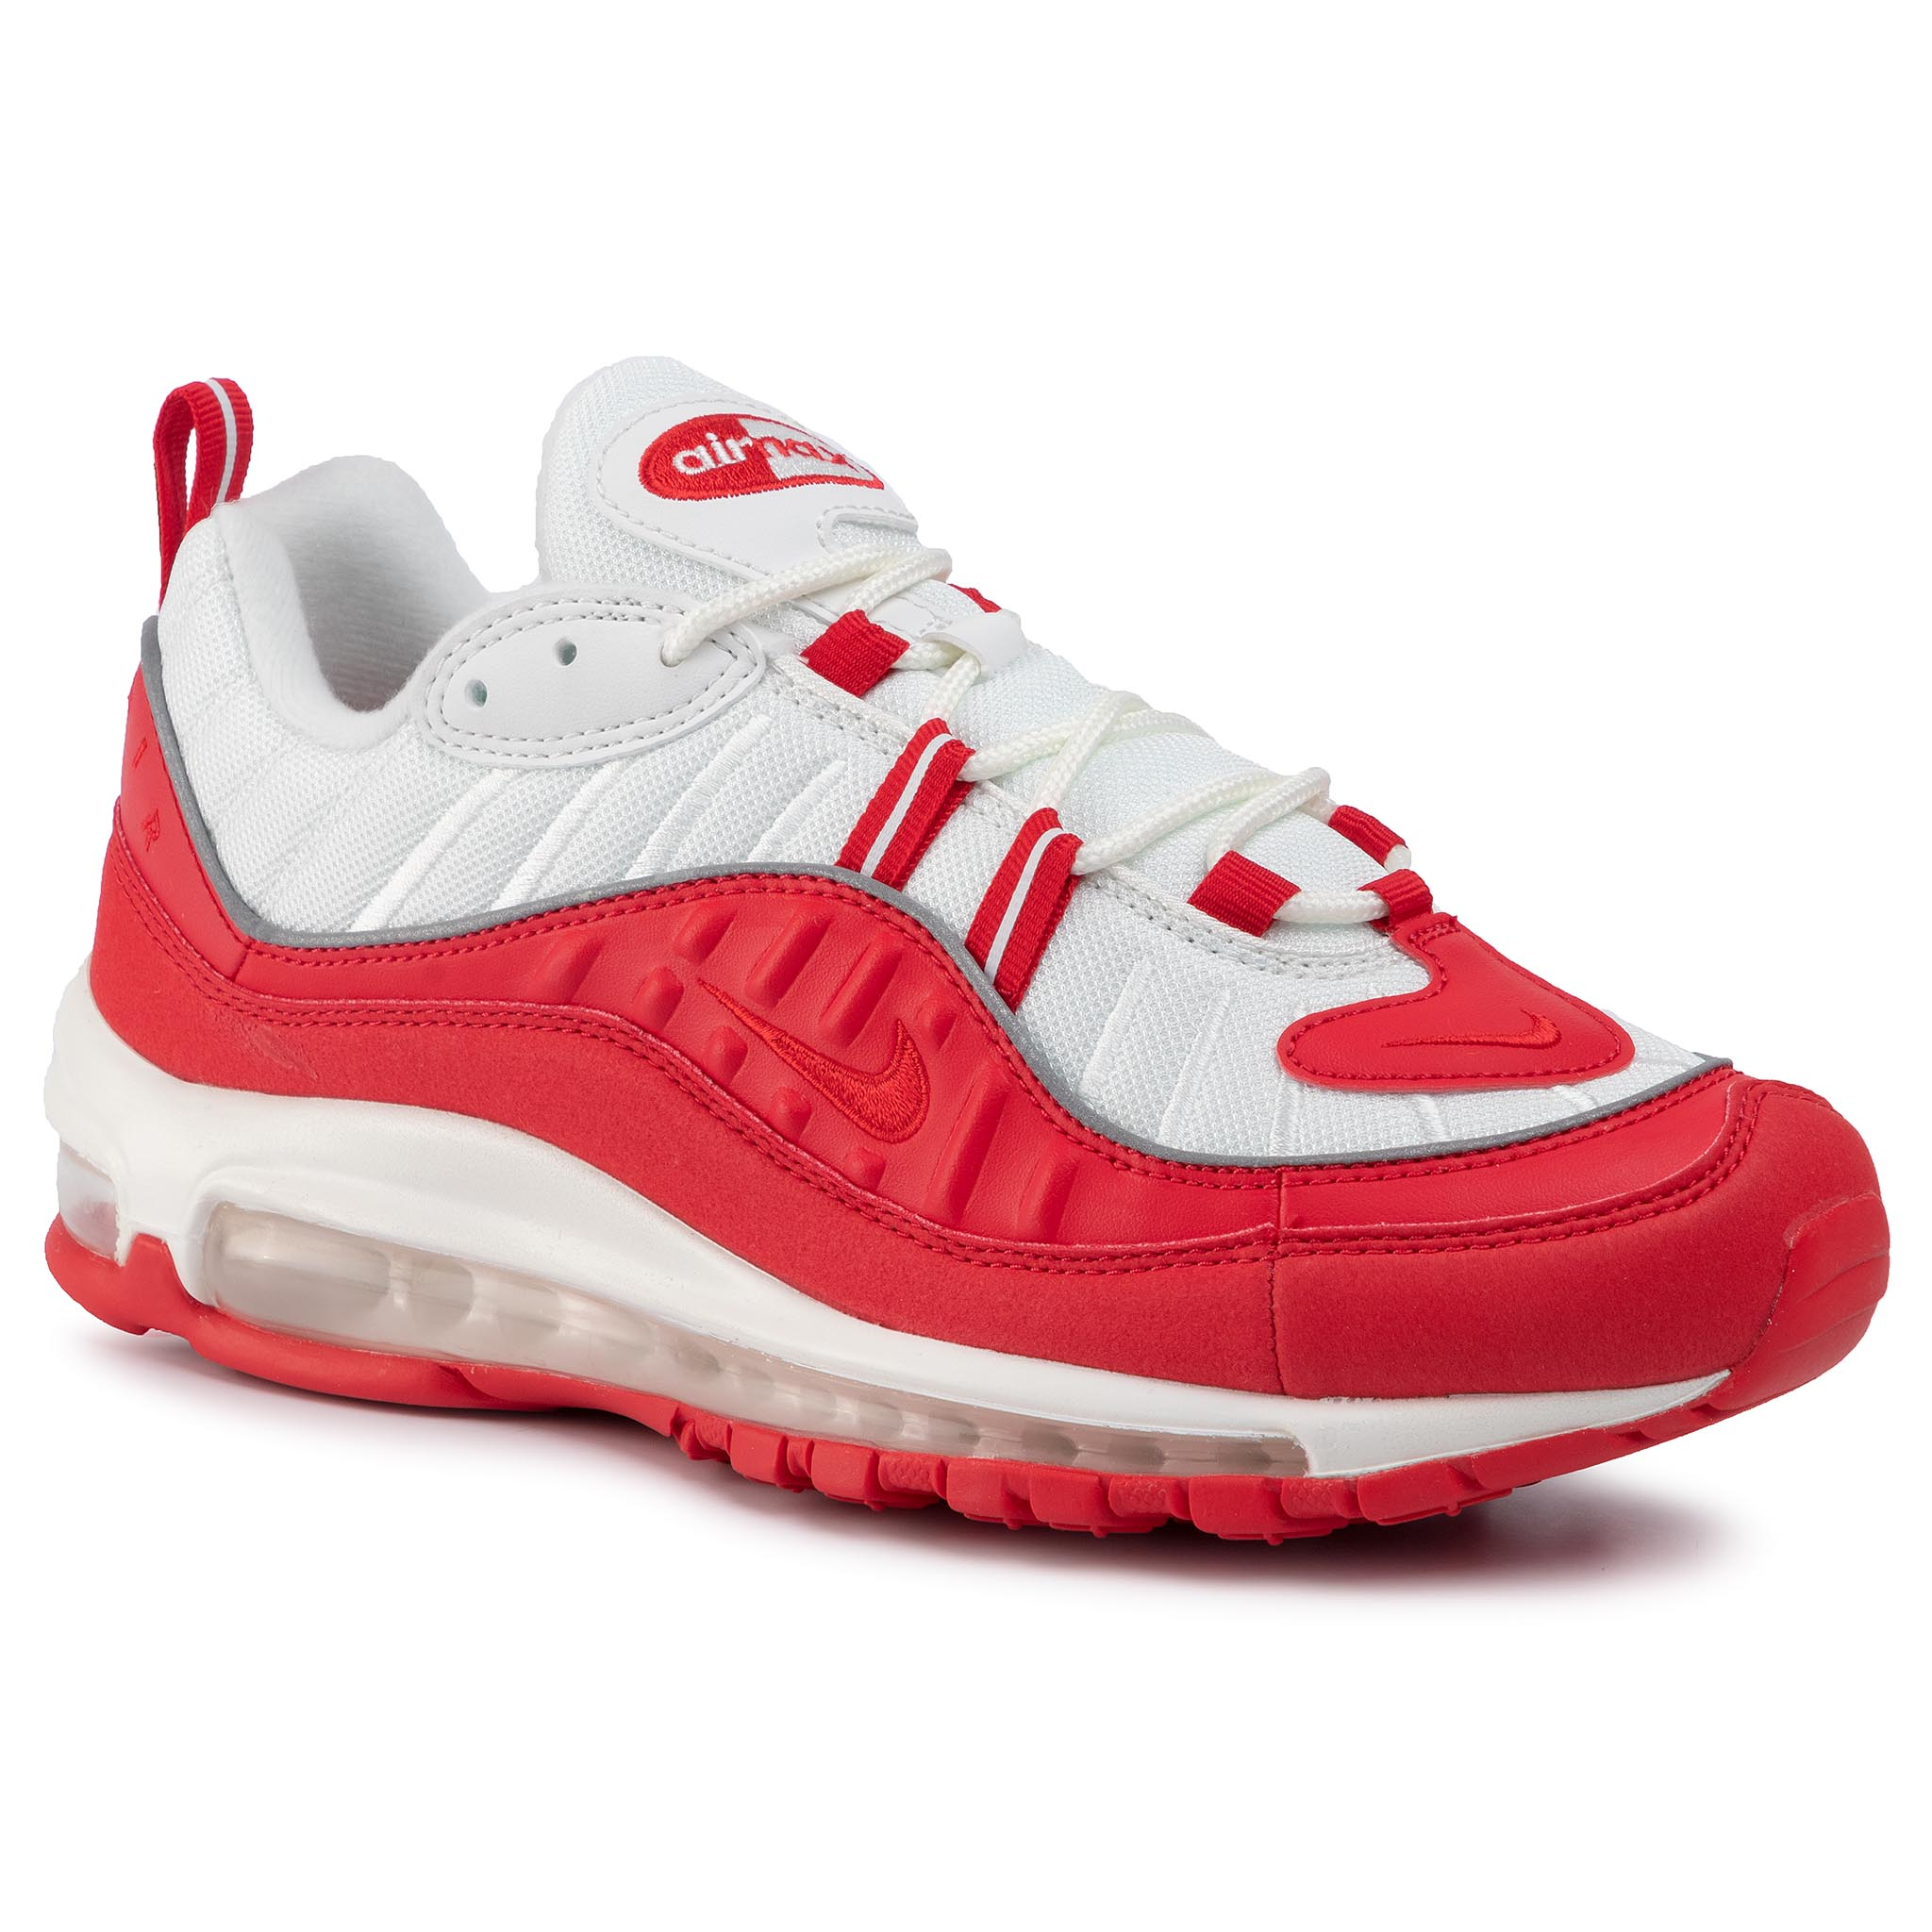 Pantofi NIKE - Air Max 98 640744 602 University Red/University Red